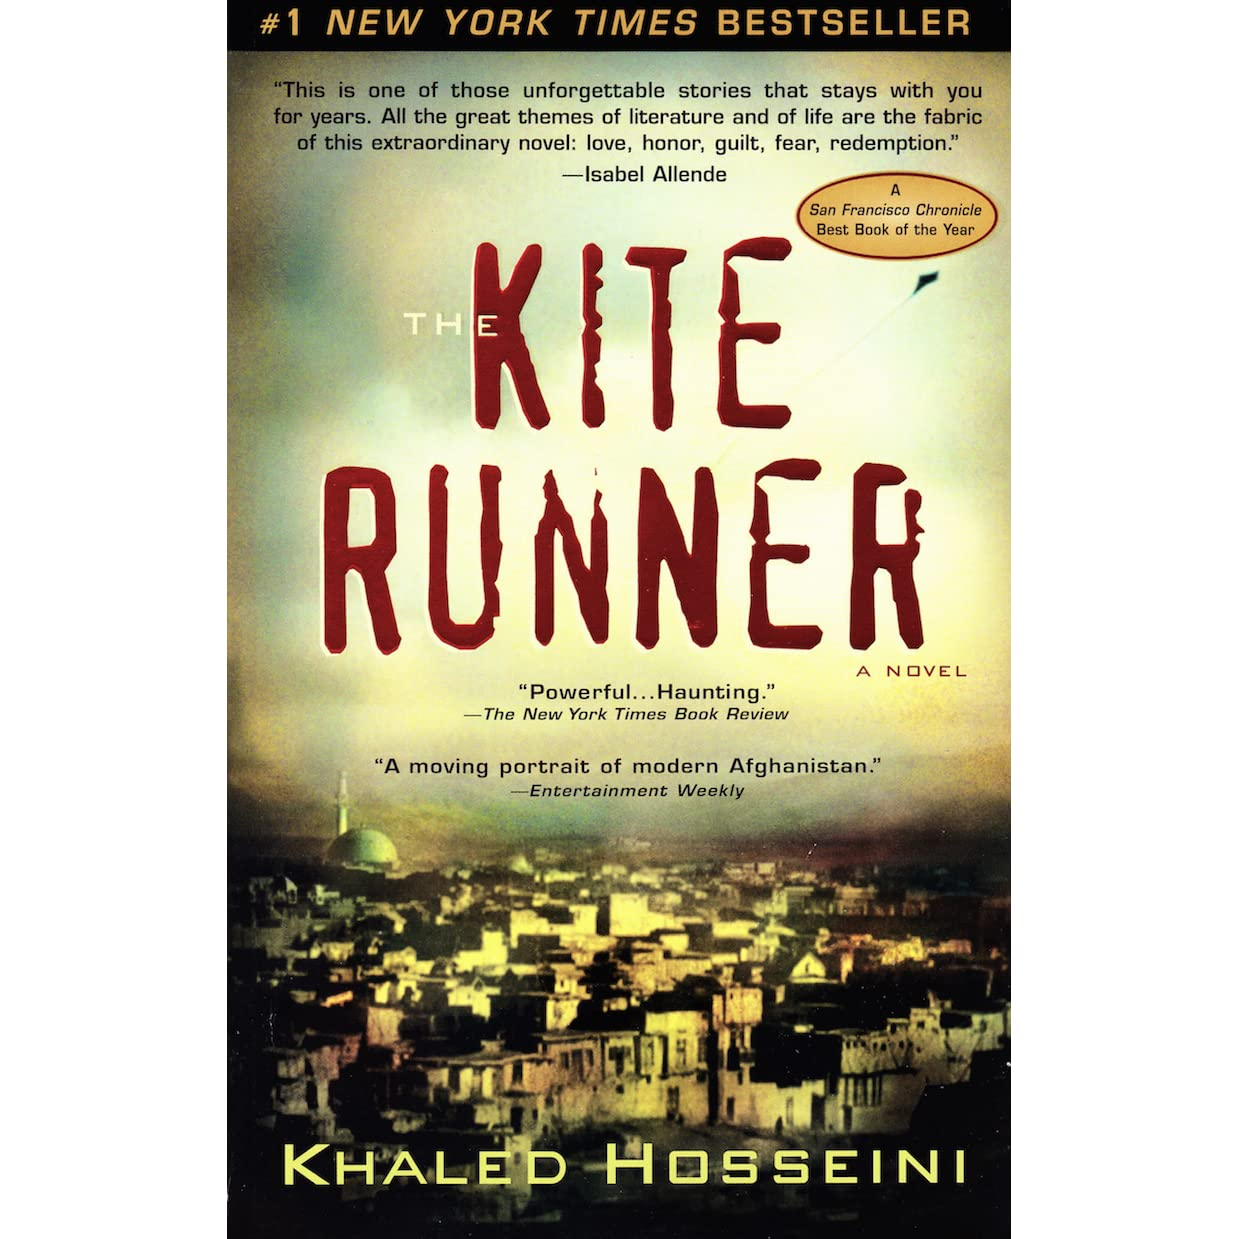 the kite runner summary sparknotes the relationship between father  the kite runner by khaled hosseini reviews discussion the kite runner by khaled hosseini reviews discussion